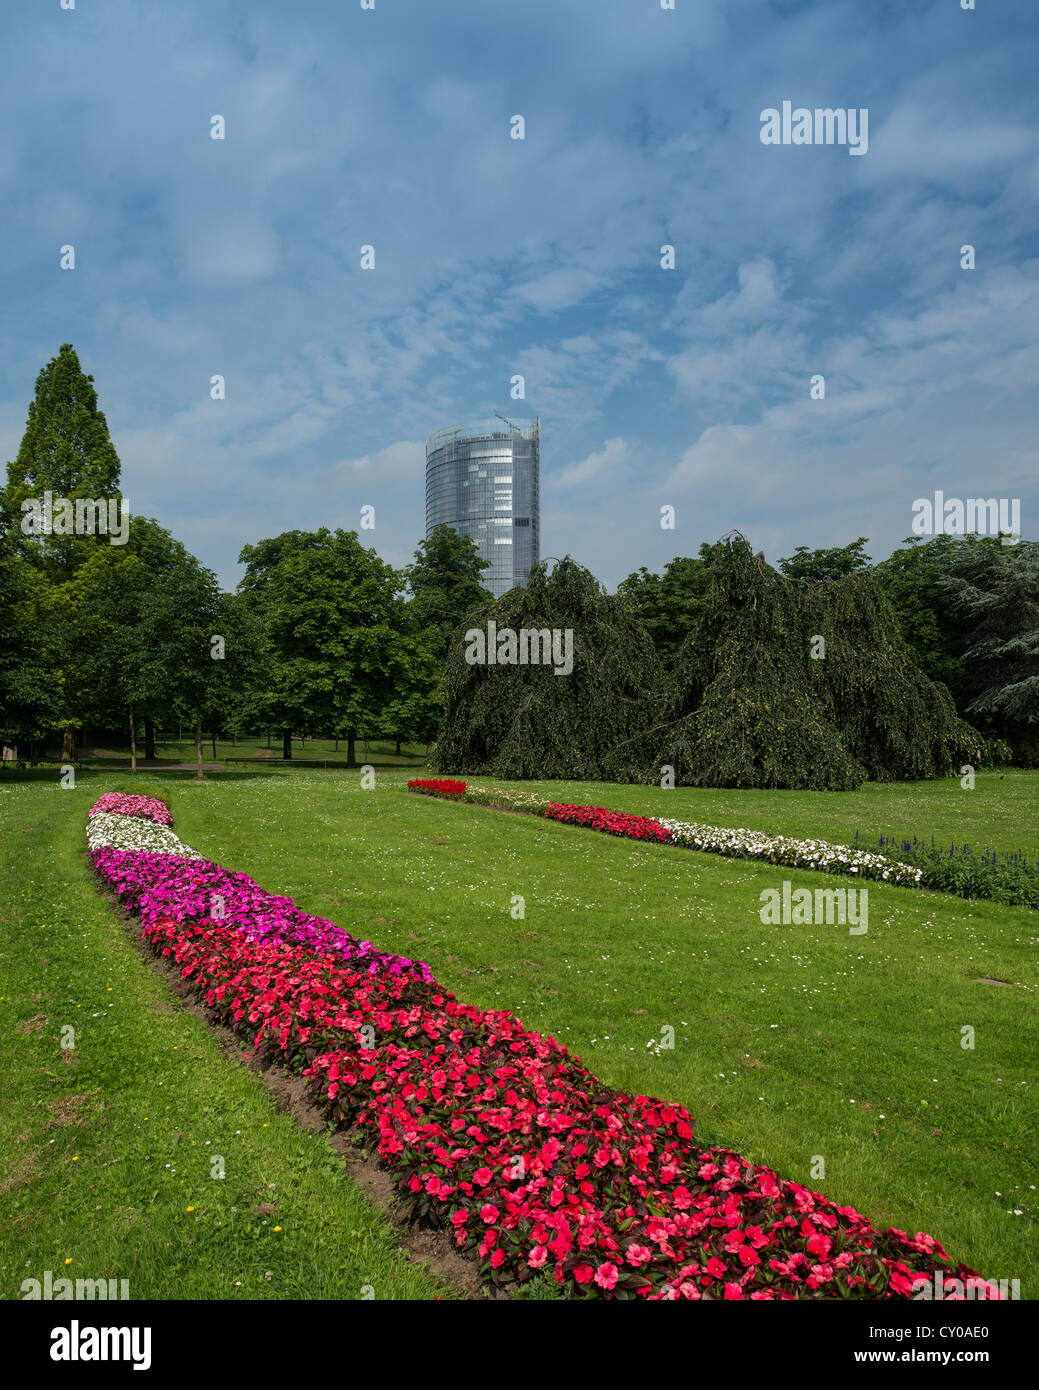 View from the leisure park to the Posttower, Bonn, North Rhine-Westphalia - Stock Image